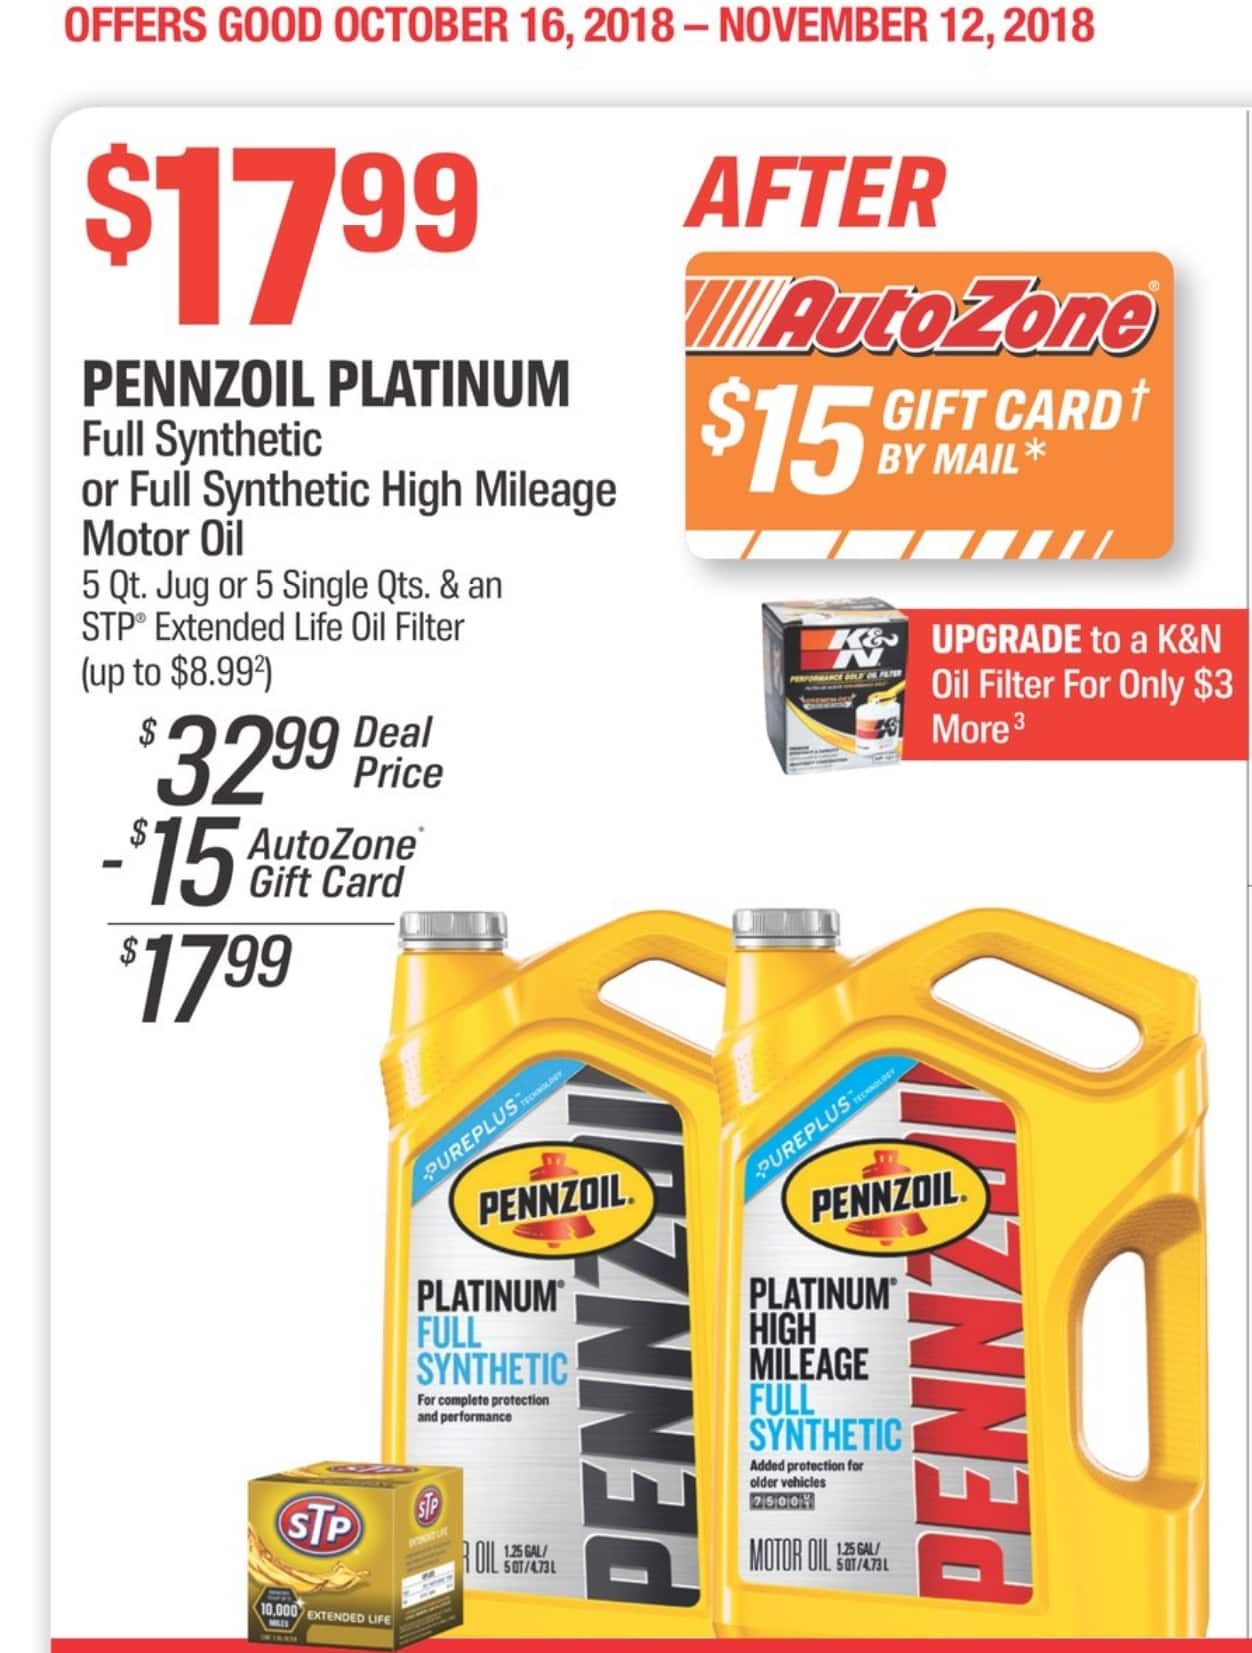 5 qt pennzoil platinum oil or platinum high mileage and stp oil filter  $7.99 ($32.99 - $10RB = $22.99 + $15 AutoZone GC) - Slickdeals.net